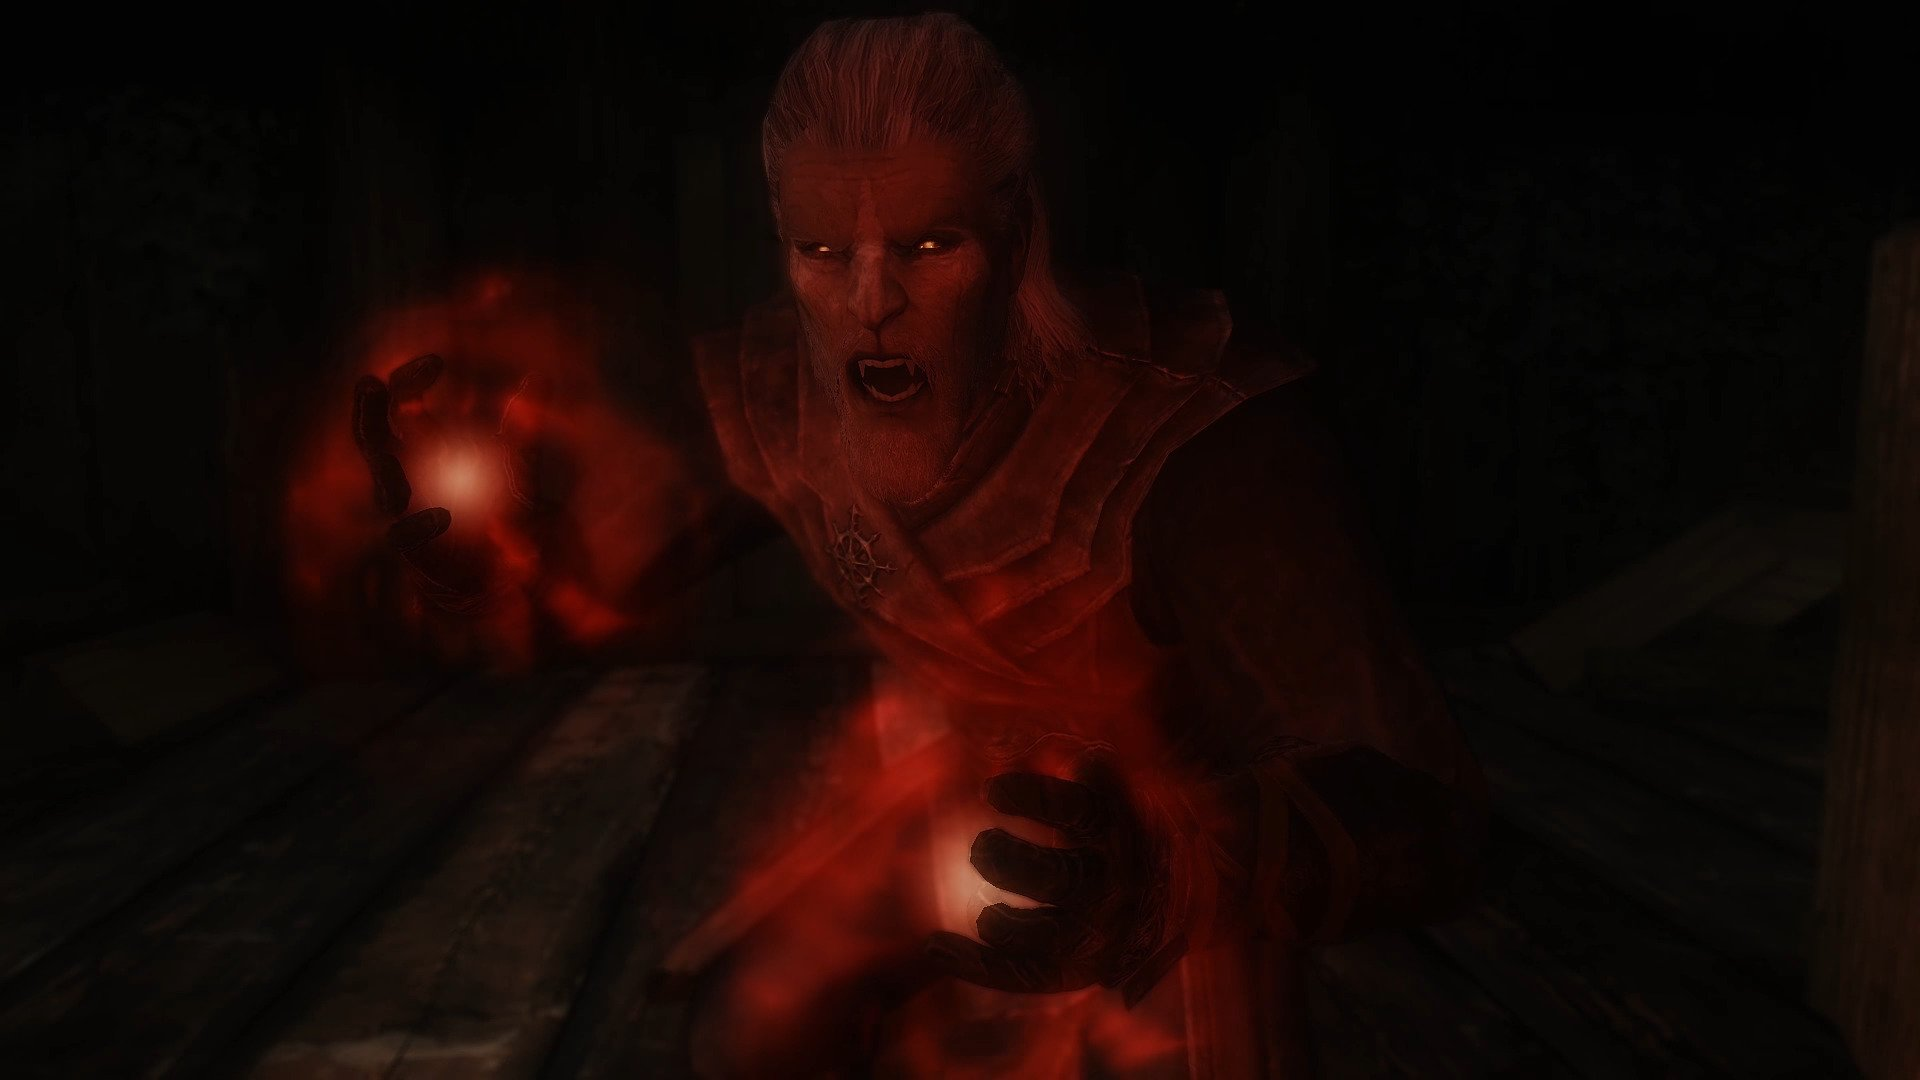 Skyrim Build Ideas: The Vampire – Perks, Gameplay, and Roleplay Ideas For New Playstyle